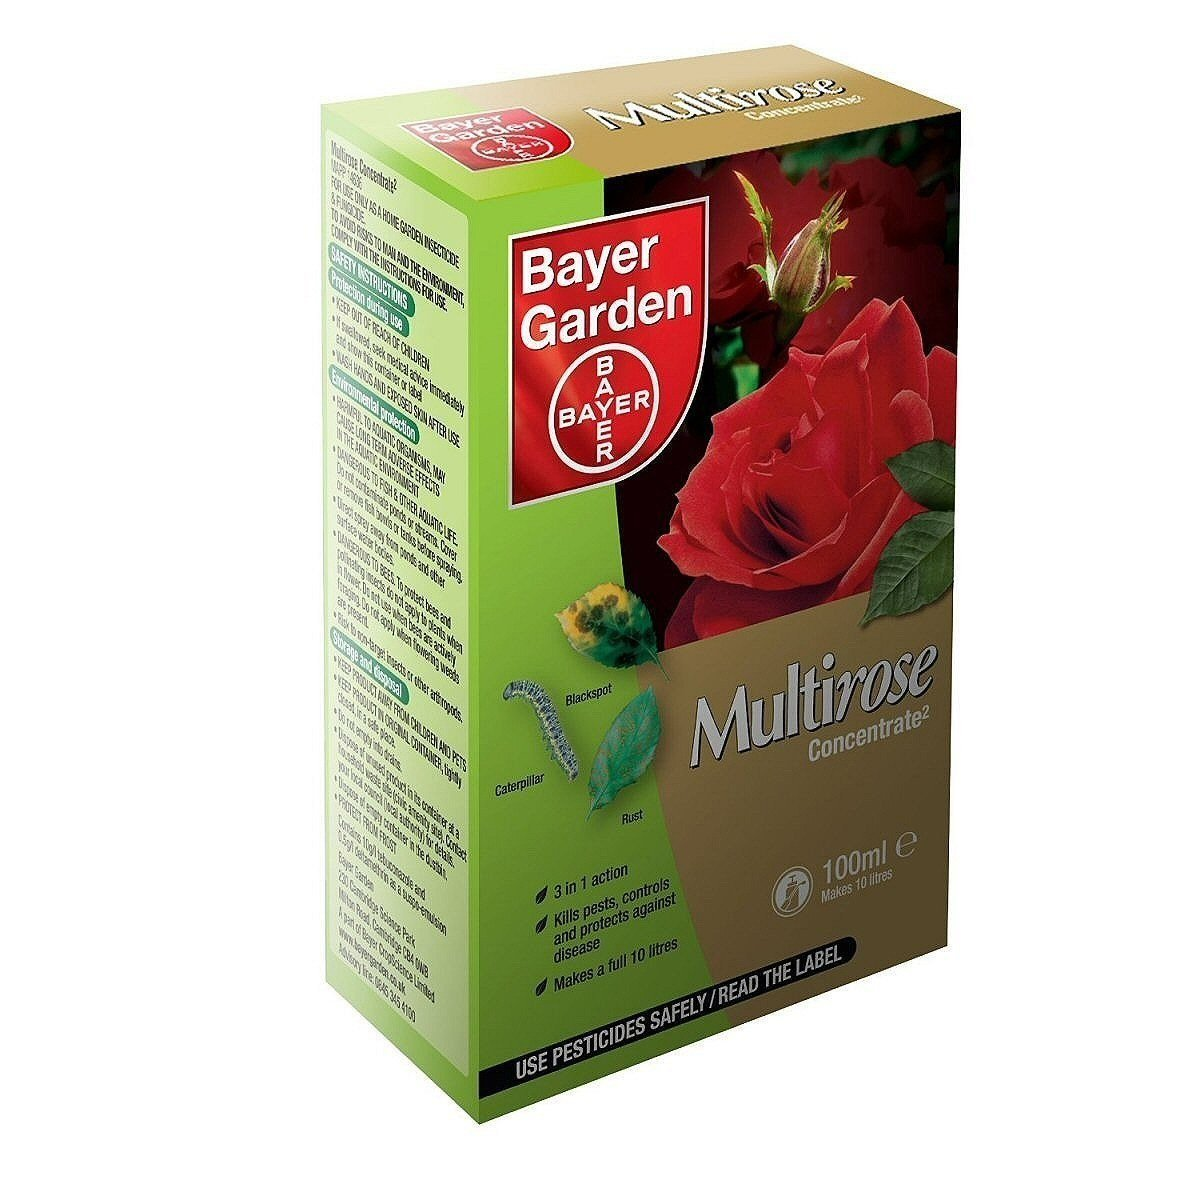 Bayer Garden Multirose 2 Concentrate 100ml Makes 10 litres Protects Roses Plants